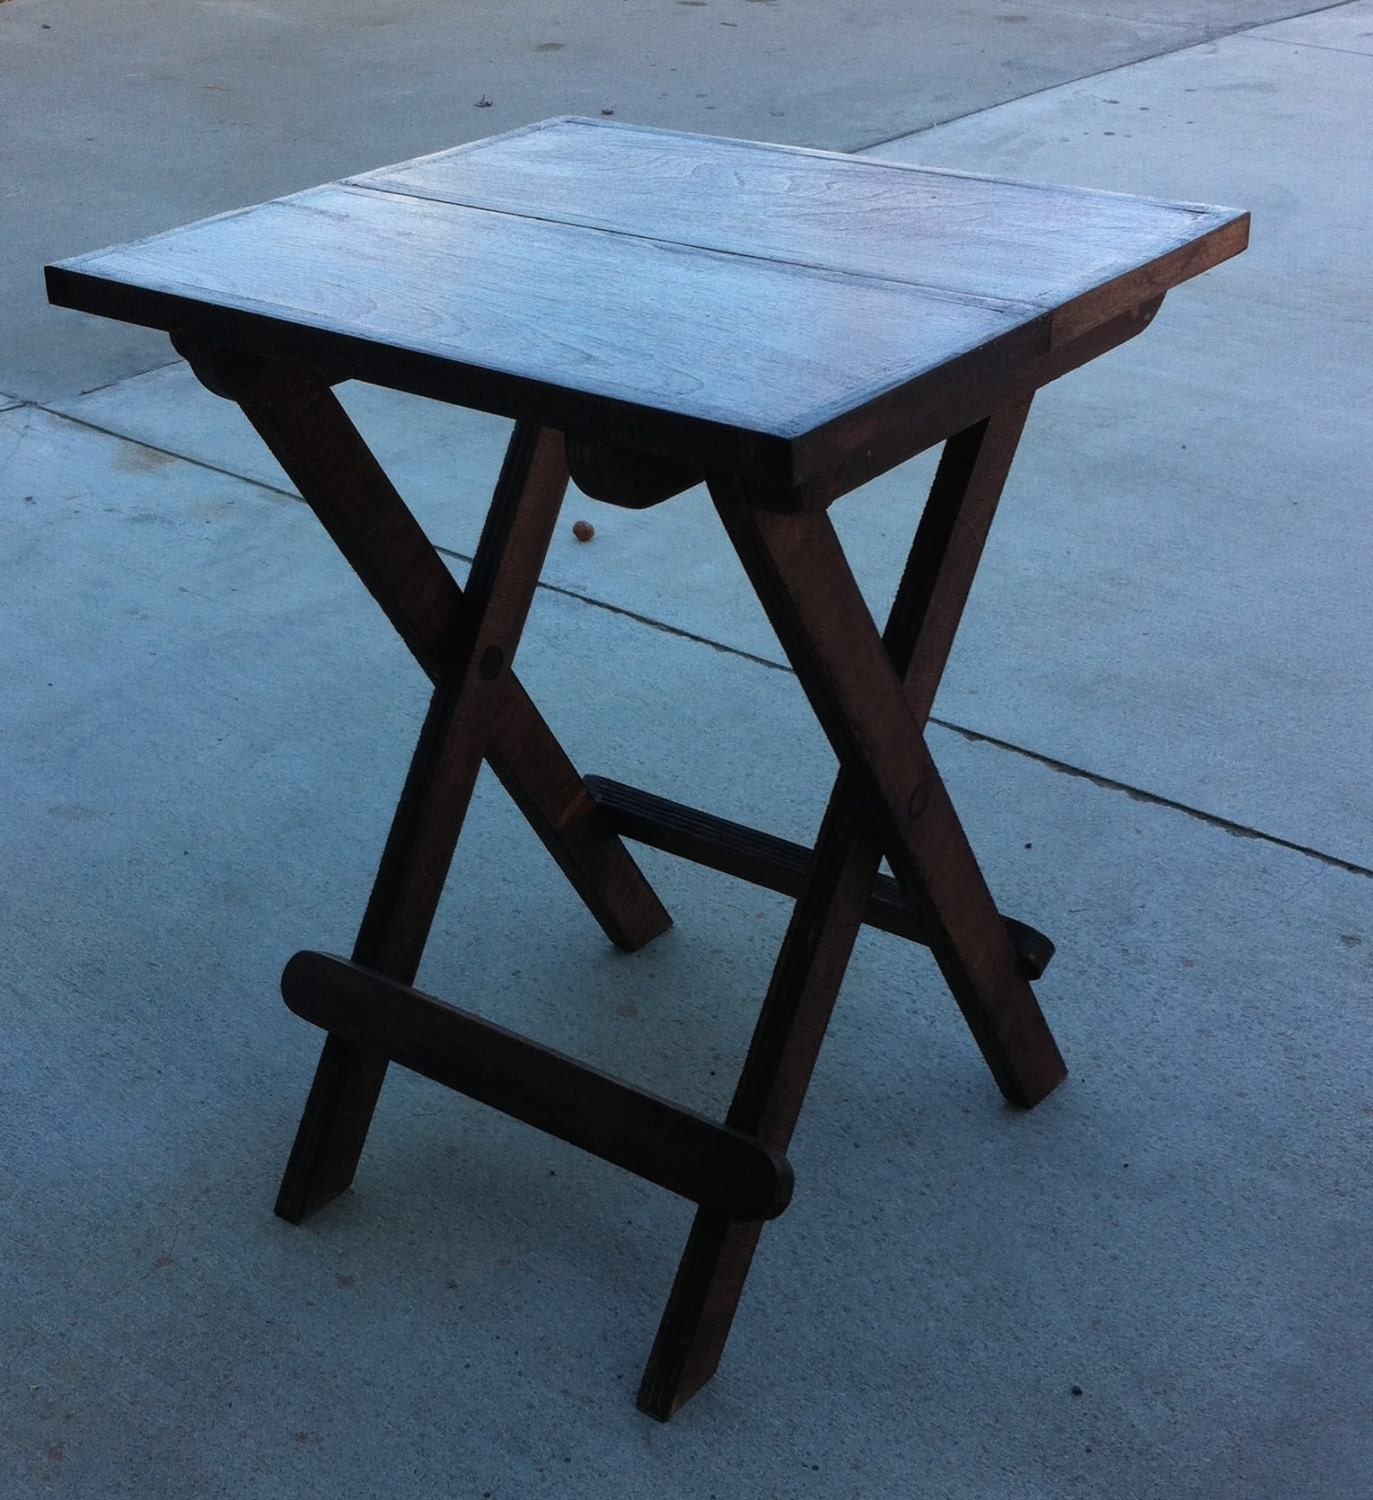 fold up table fold up table 16 x 15 x 20 high 11643